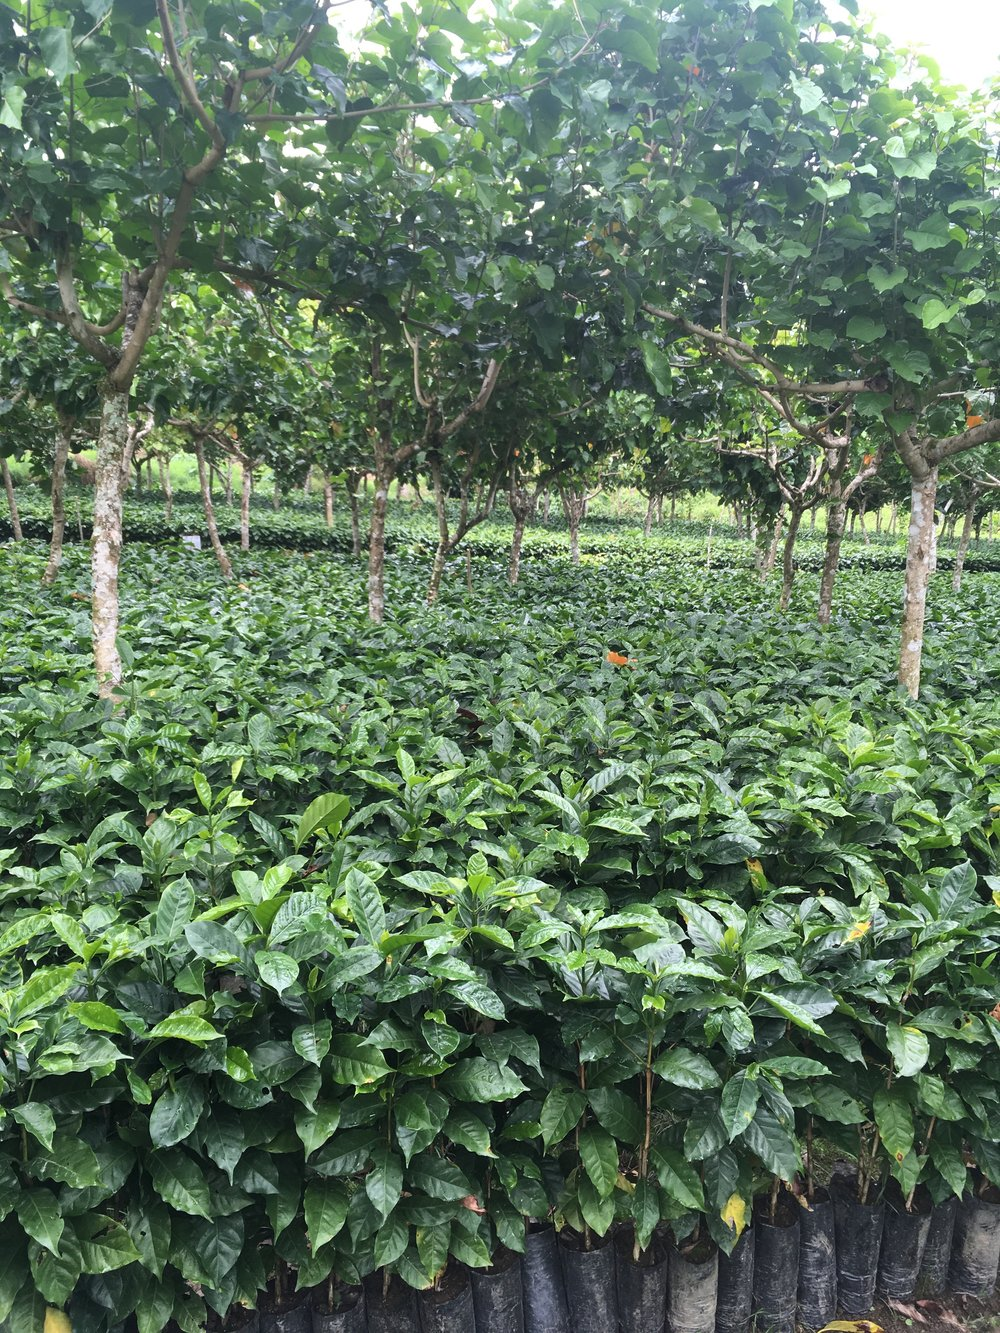 Rows and rows of mathematically perfect shade trees protecting thousands of coffee seedlings.